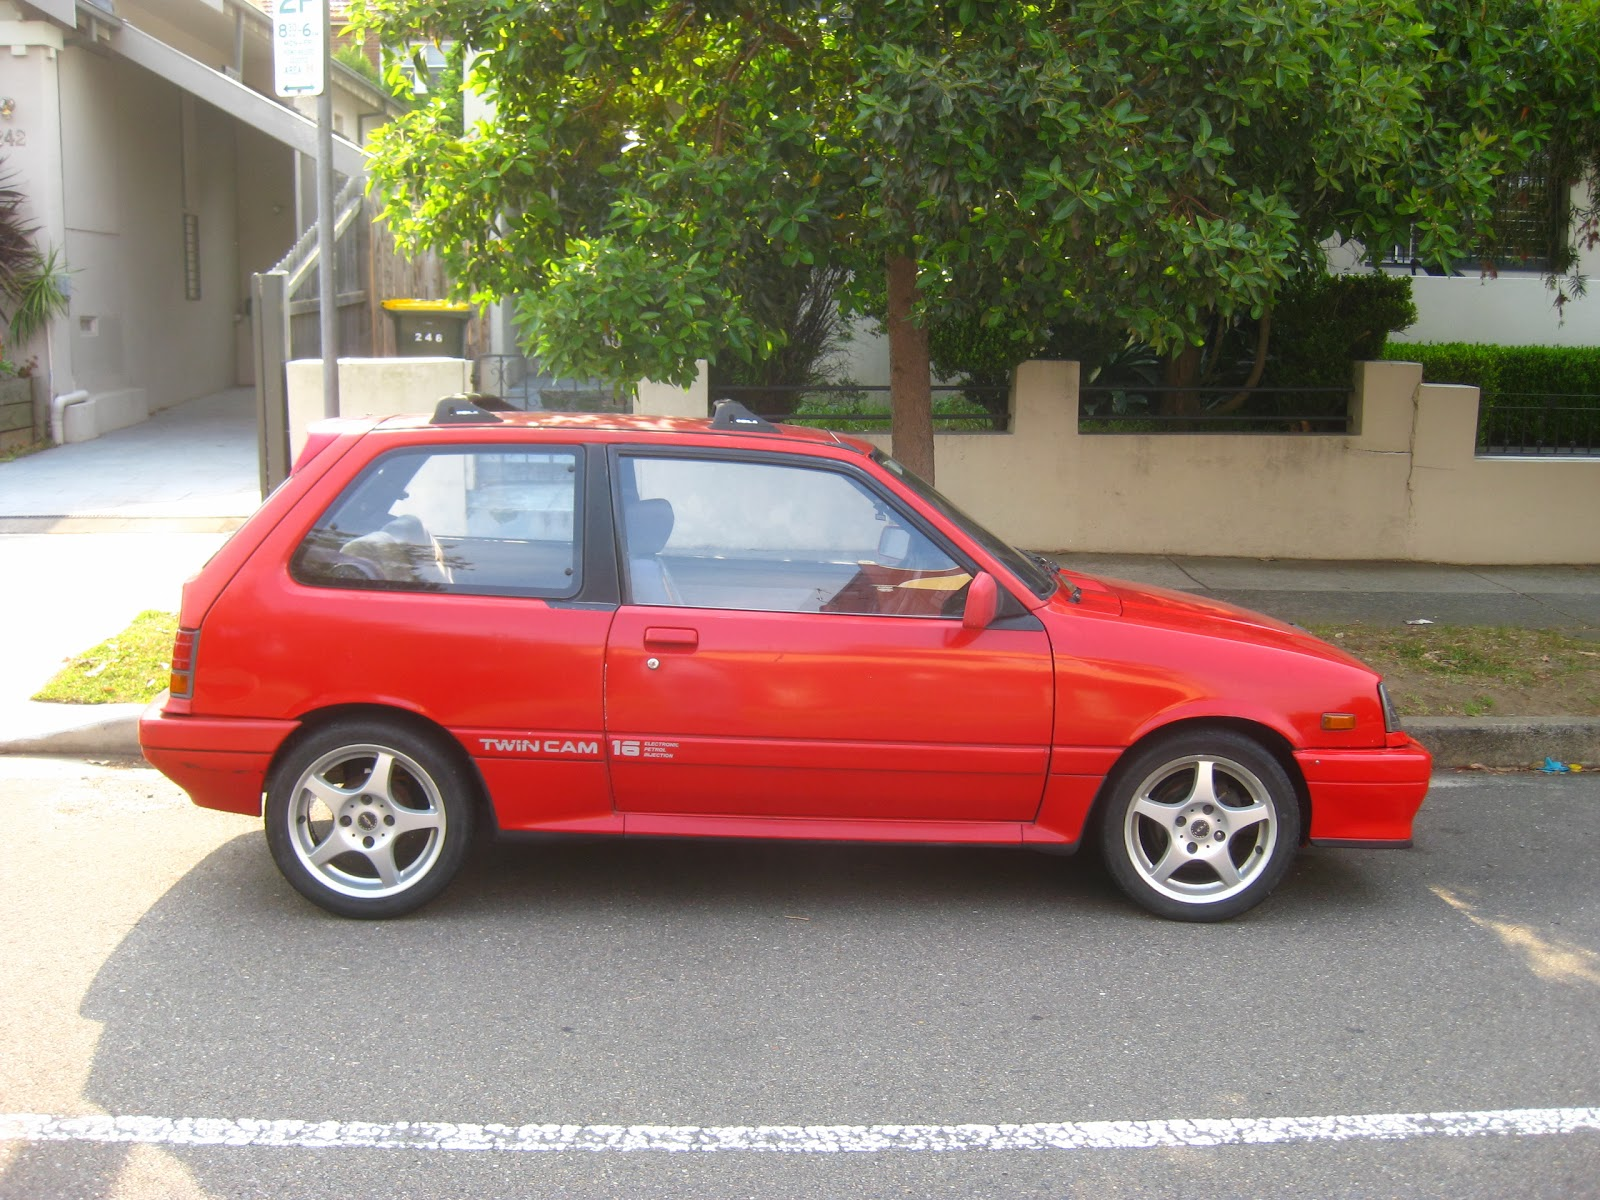 Aussie Old Parked Cars 1986 Suzuki Swift 1 3 Gti